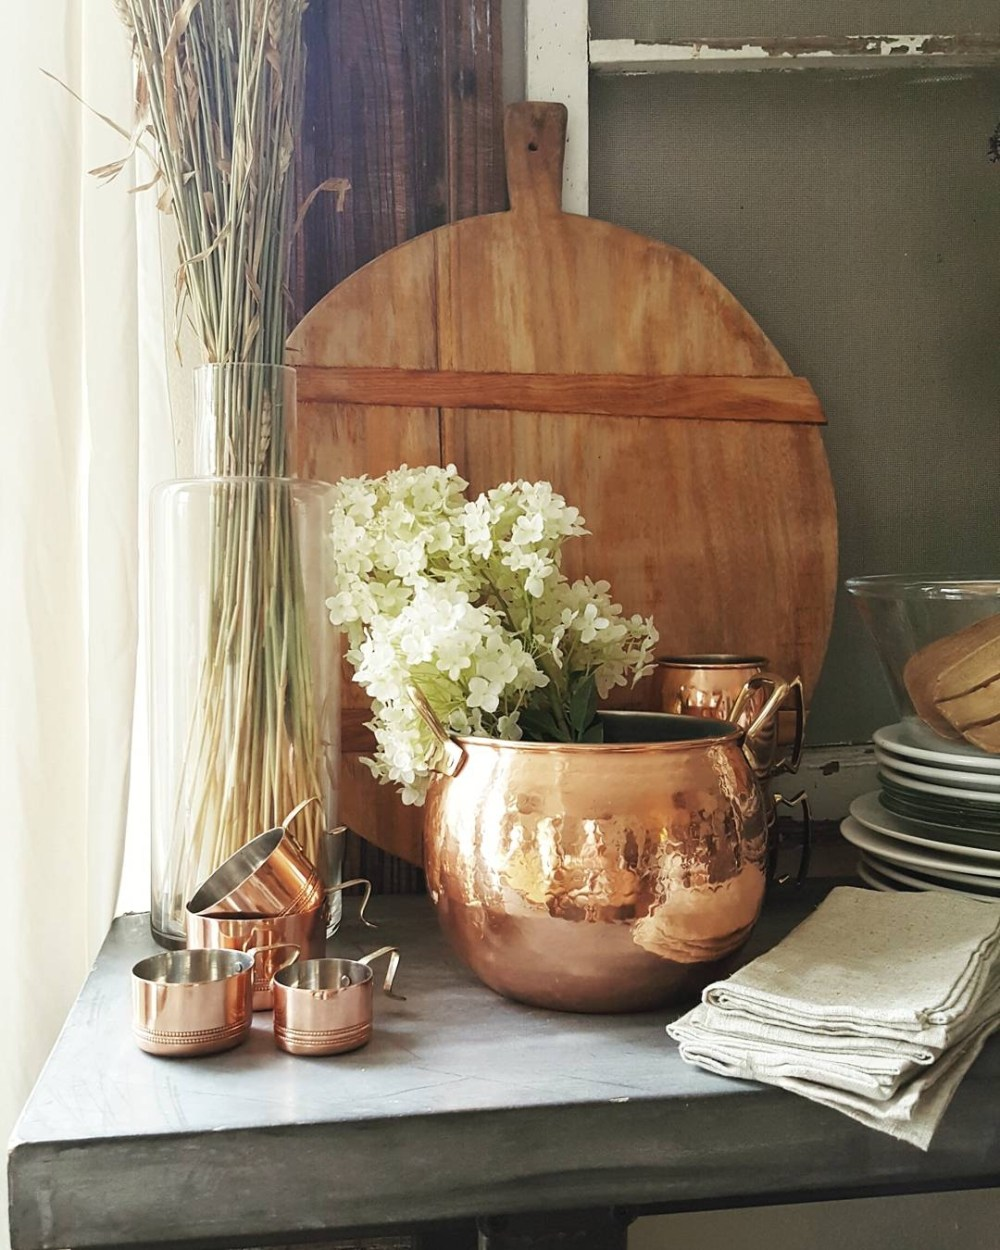 Country Farmhouse Kitchen White Tulips Flowers Wood Spoons Bread Boards Concrete Table Copper Hydrangea Metrie Moulding Molding Baskets Country Living Decor Design